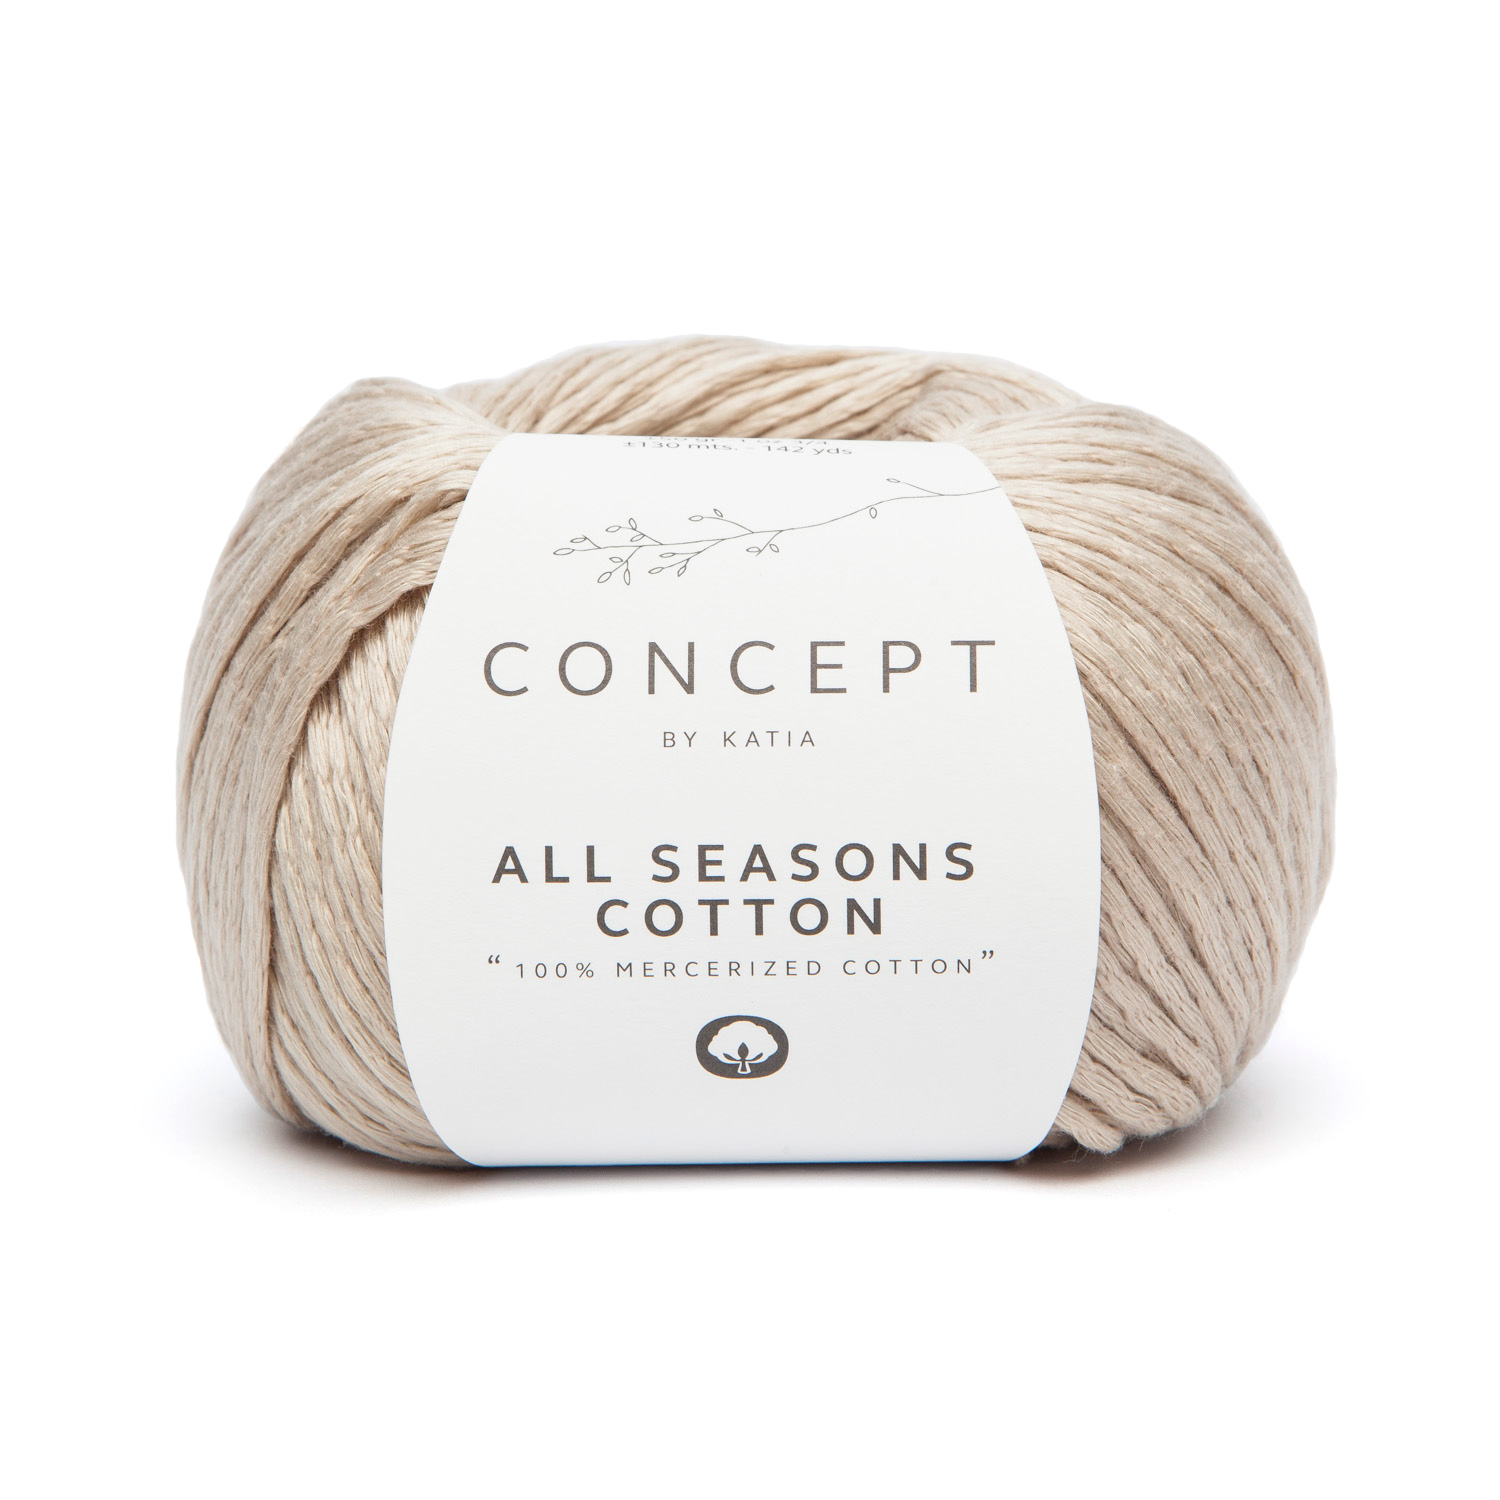 ALL SEASONS COTTON - Primavera / Verano - lanas | Katia.com